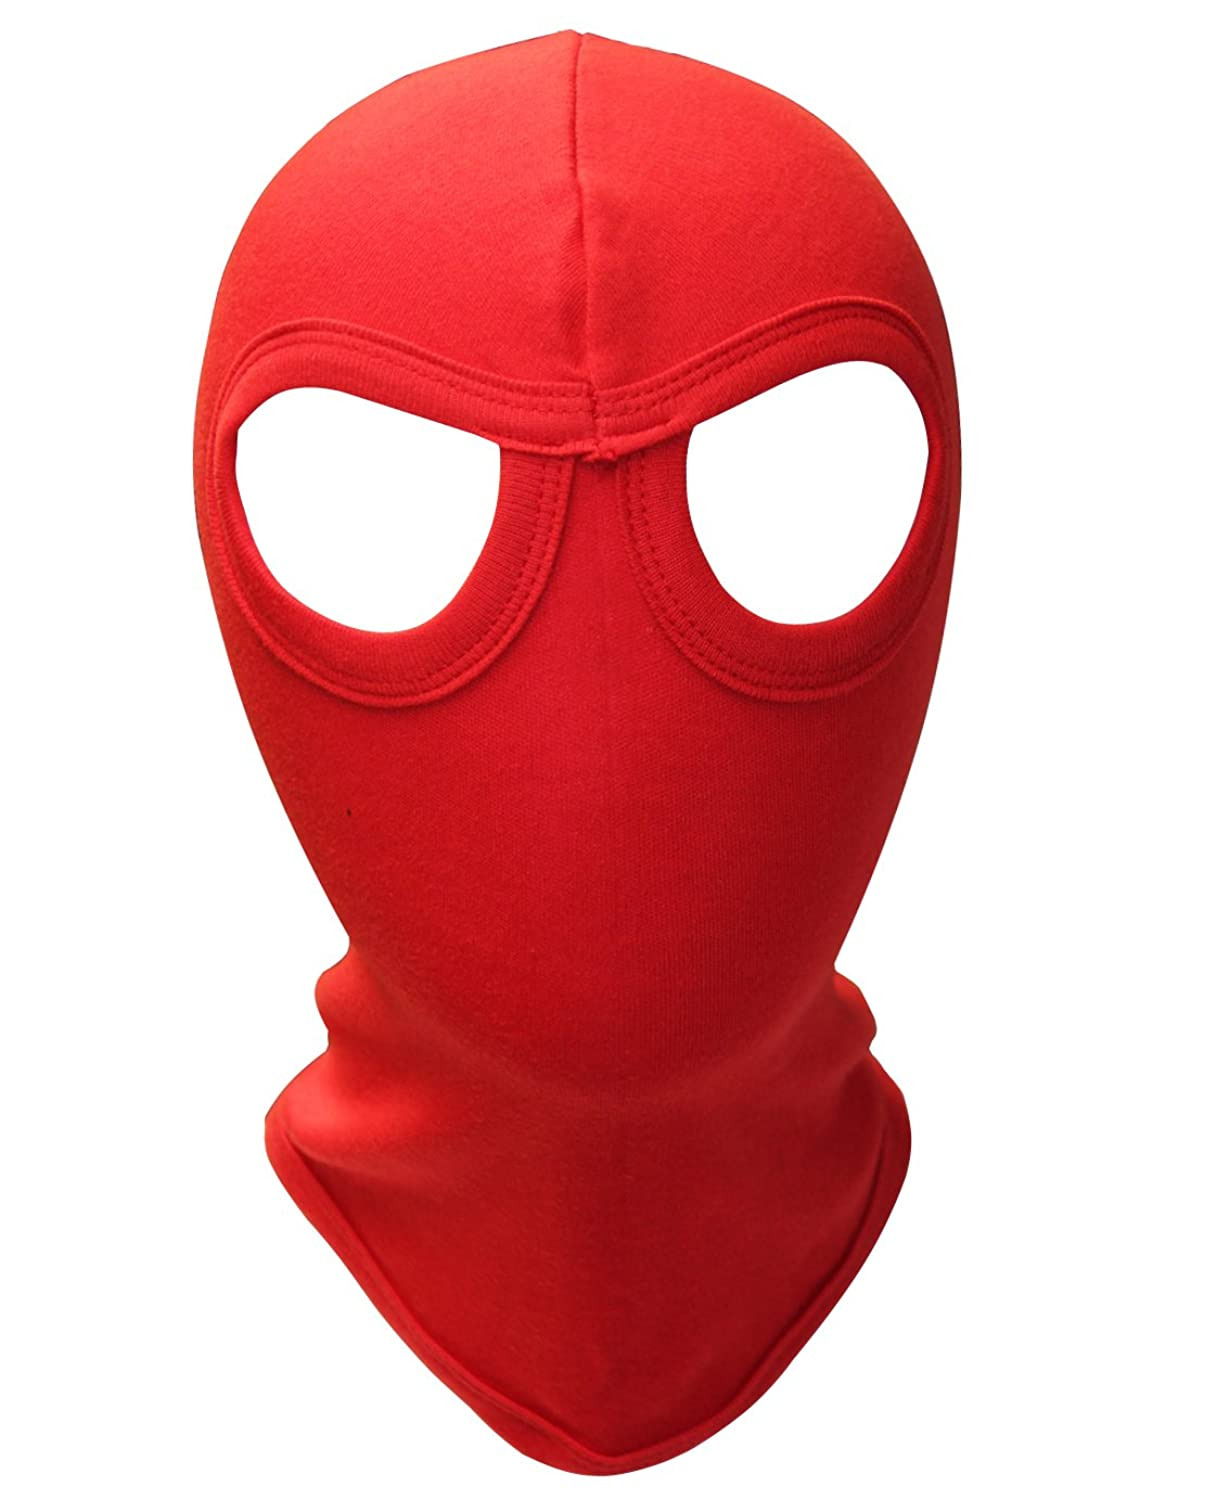 Amazon Balaclavas Hats Caps Clothing